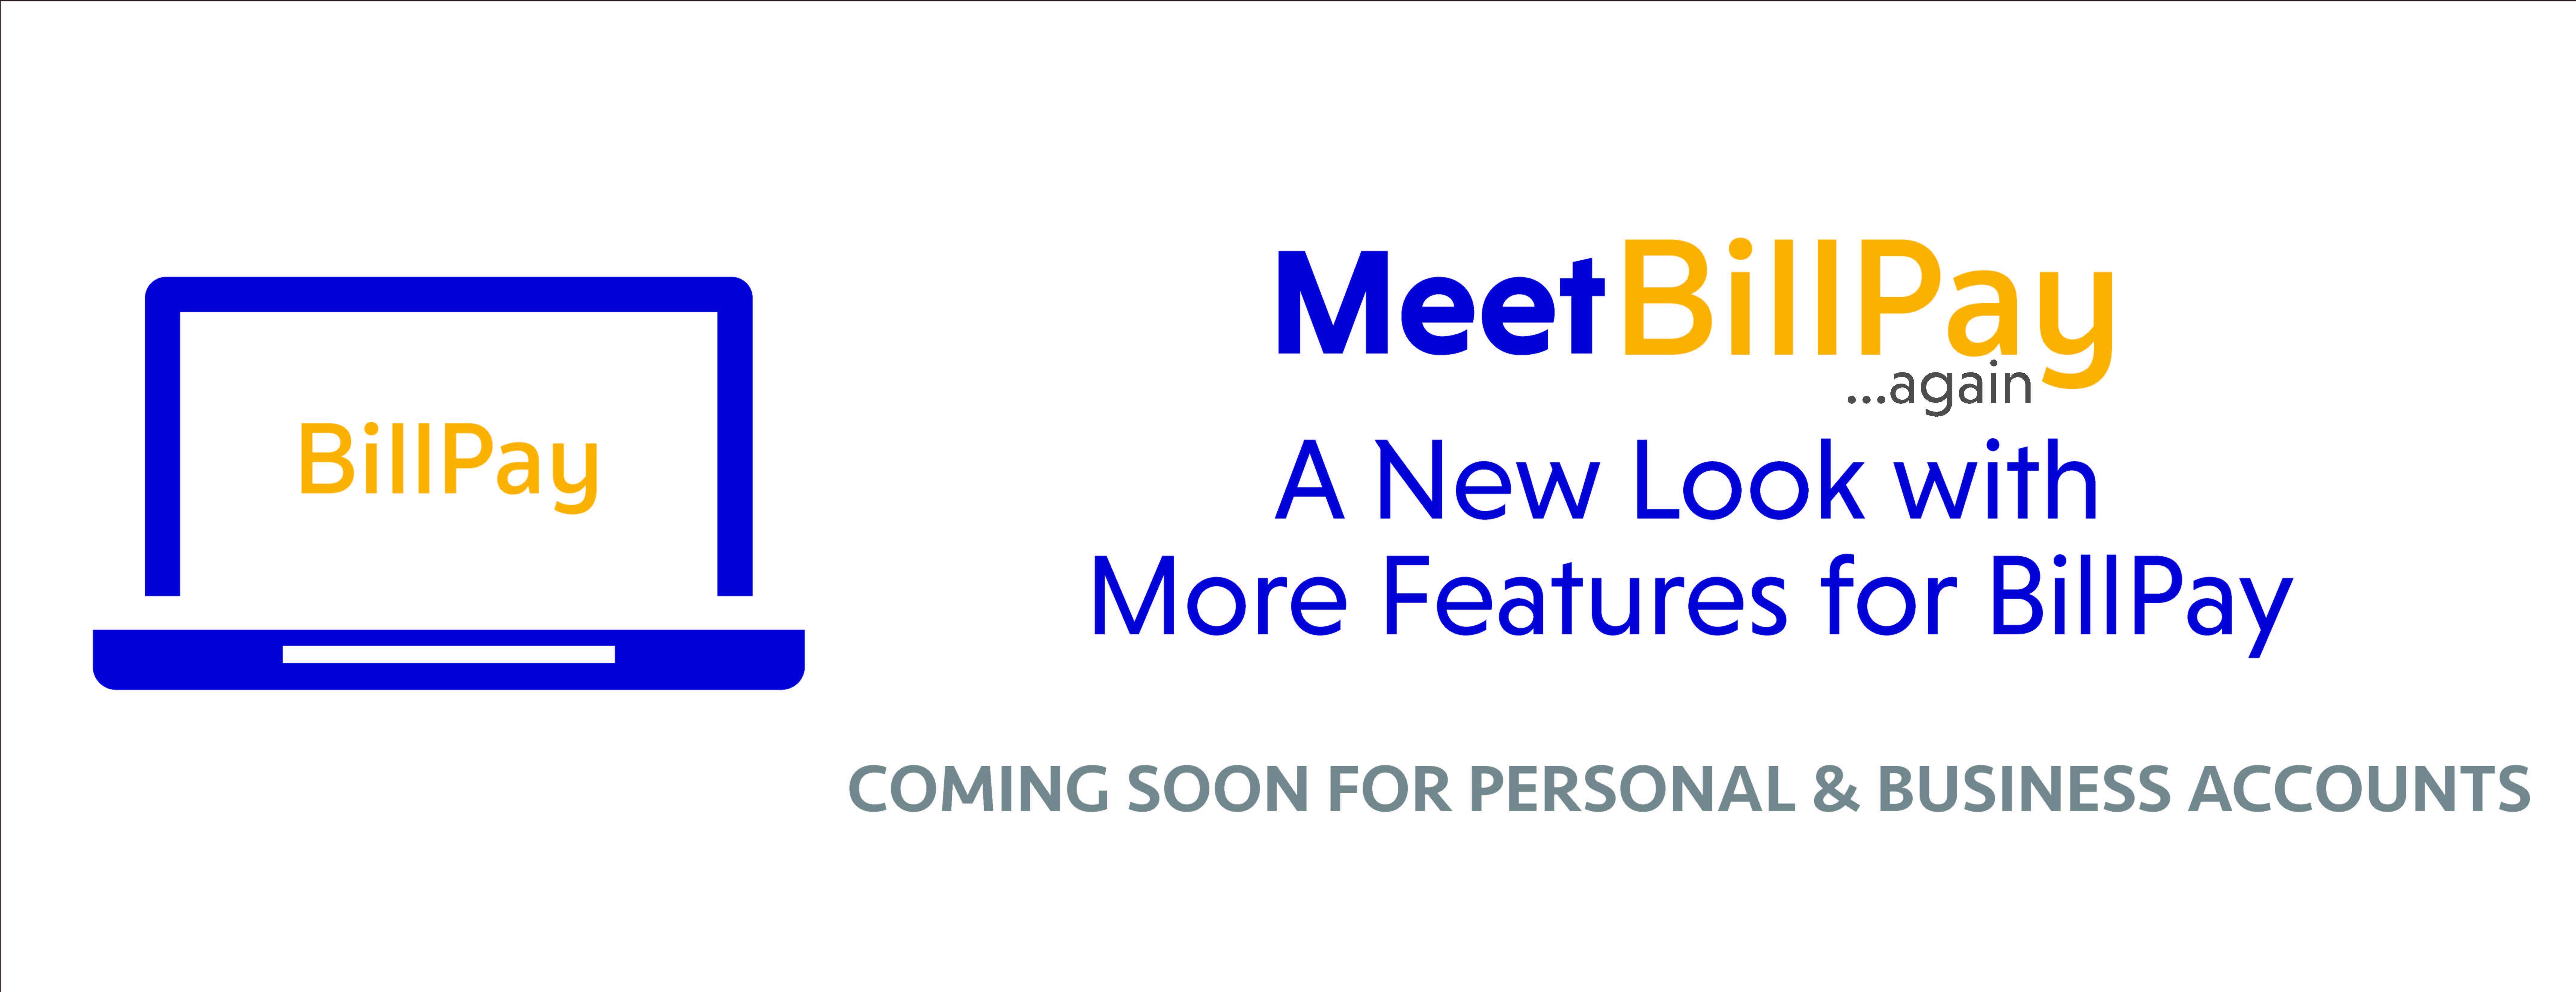 Meet-BillPay-Banner